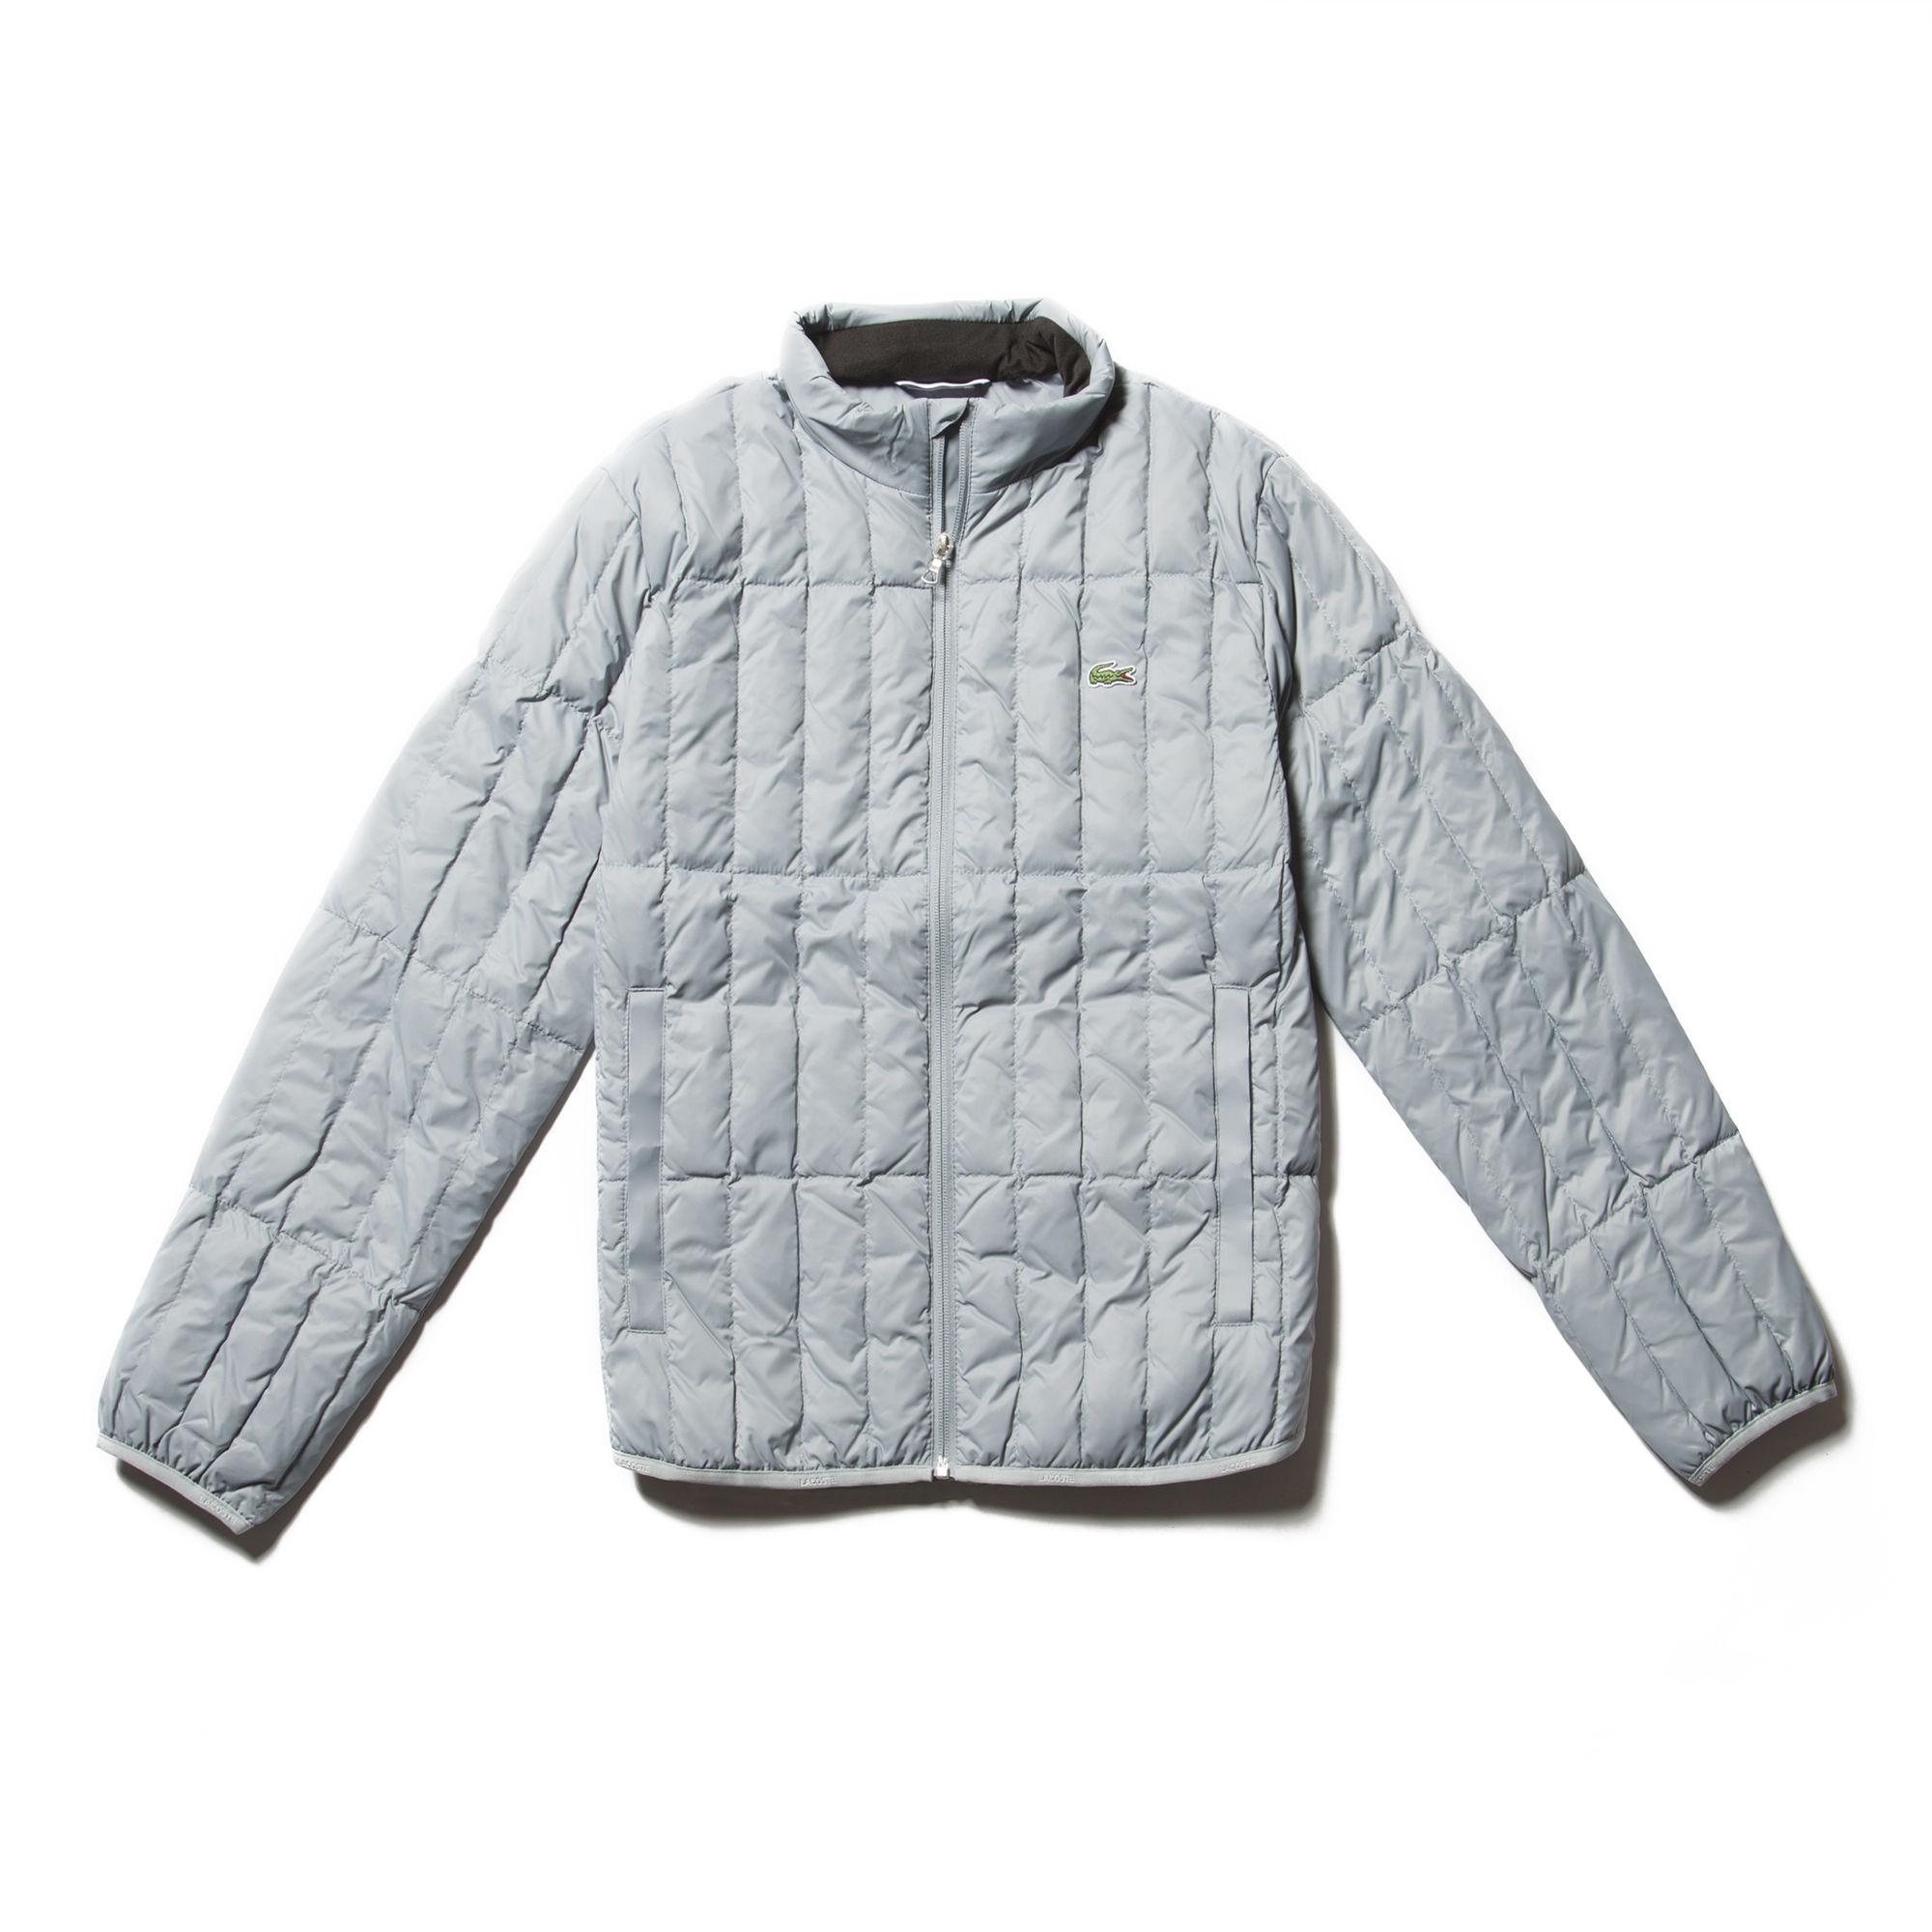 3d634a364afcb Lacoste - Blue Lightweight Built-in Hood Quilted Down Packable Jacket for  Men - Lyst. View fullscreen